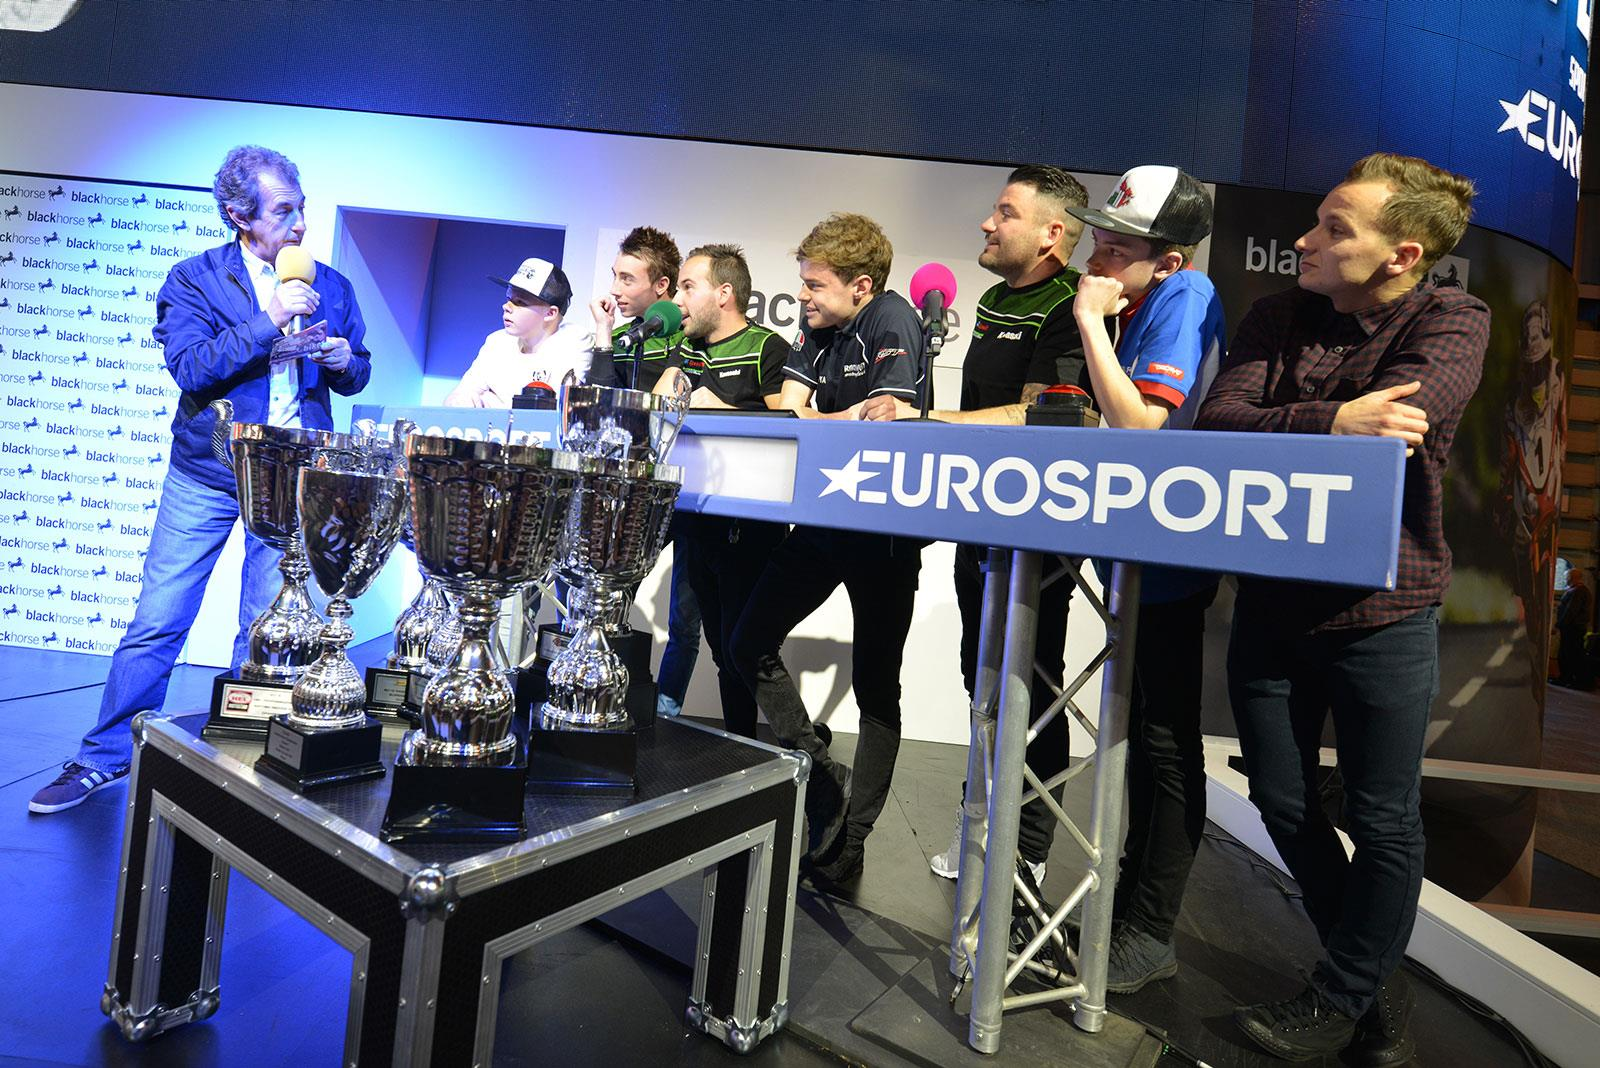 Eurosport entertainment zone